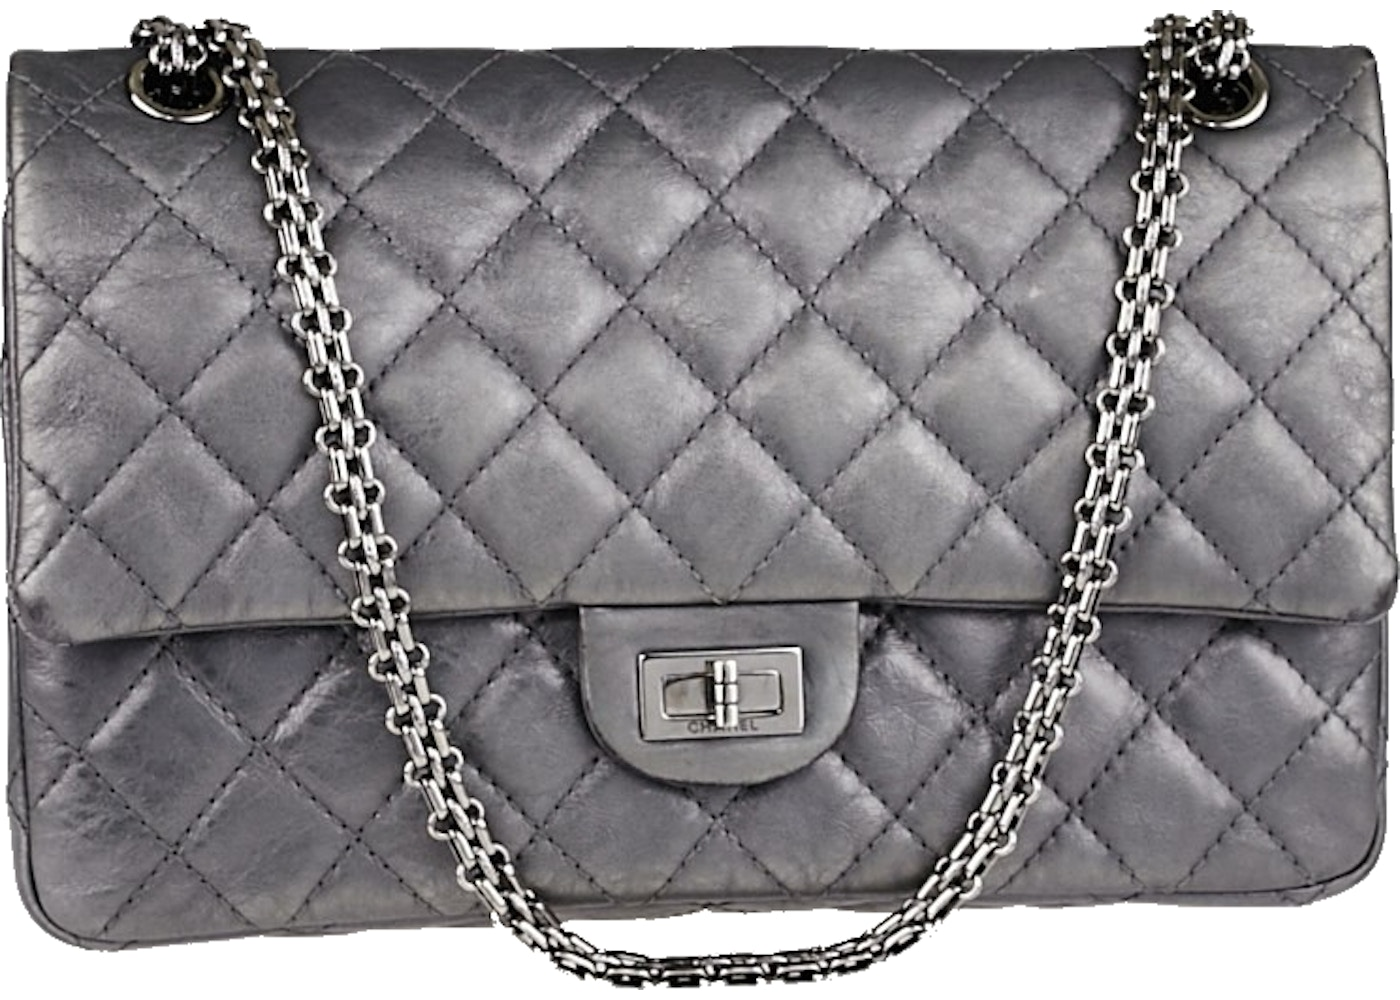 c511718dfa68 Chanel Reissue 2.55 Classic Double Flap Quilted metallic 226 Argent ...